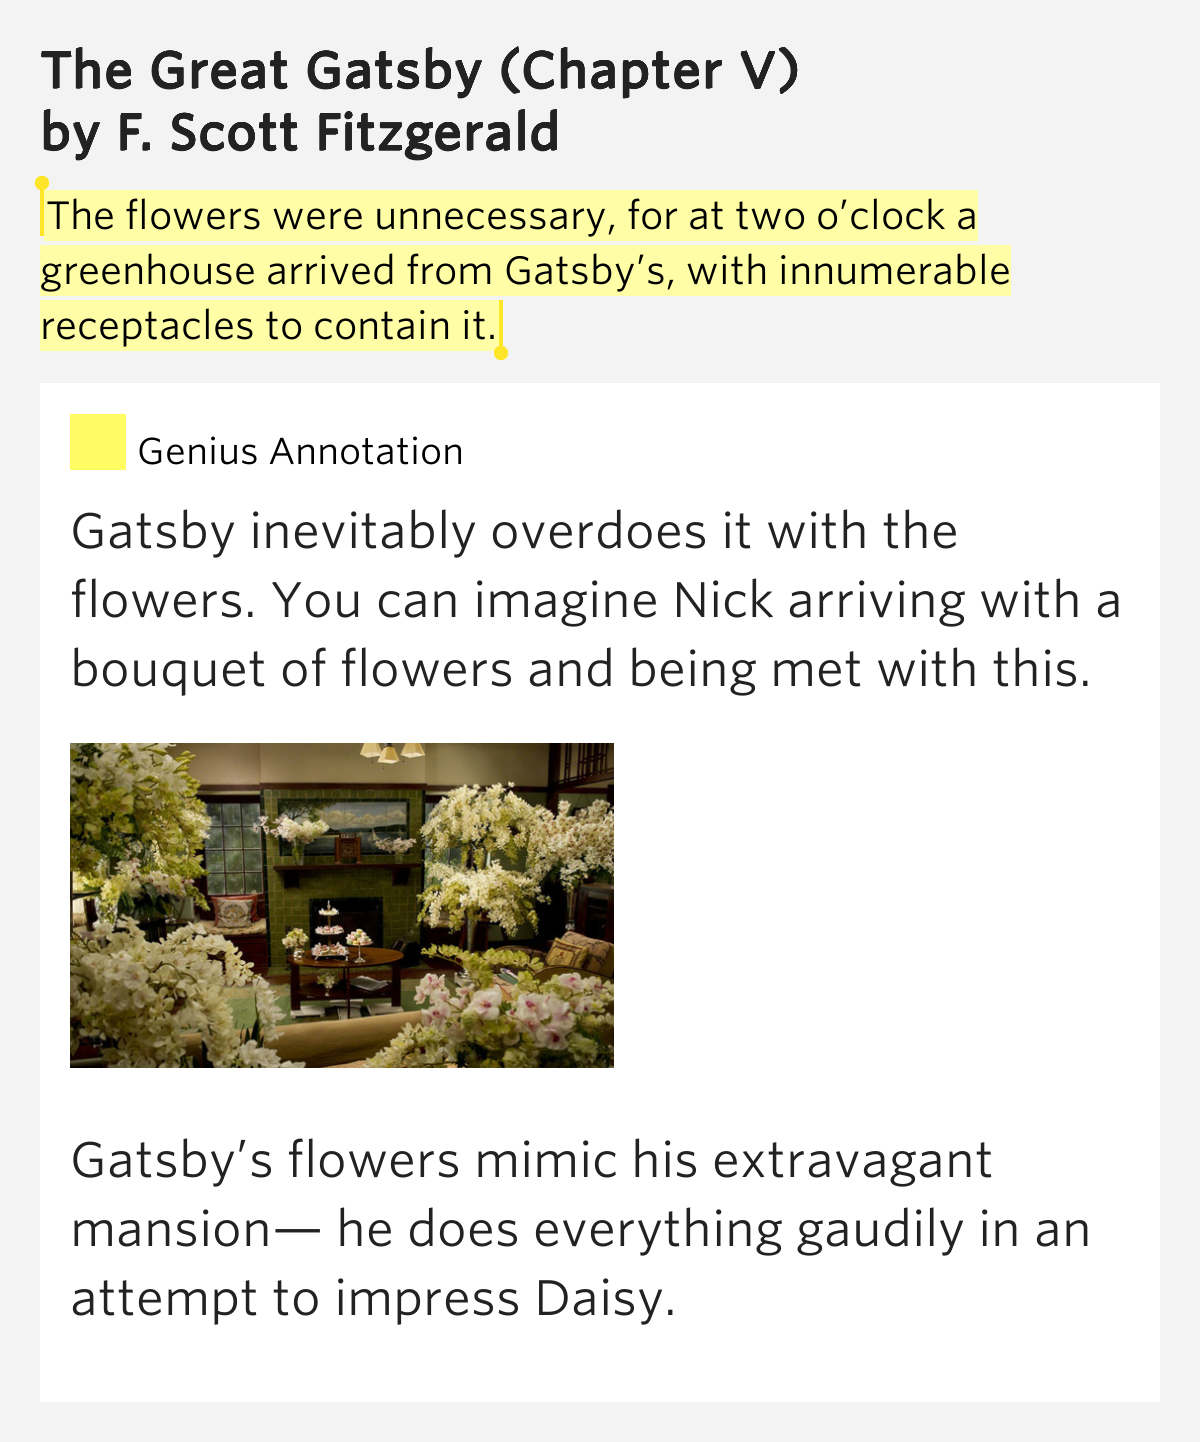 the great gatsby by fitzgerald chapter Start studying the great gatsby (study guide) chapter 1-9 peyton godden learn vocabulary, terms, and more with flashcards, games, and other study tools.